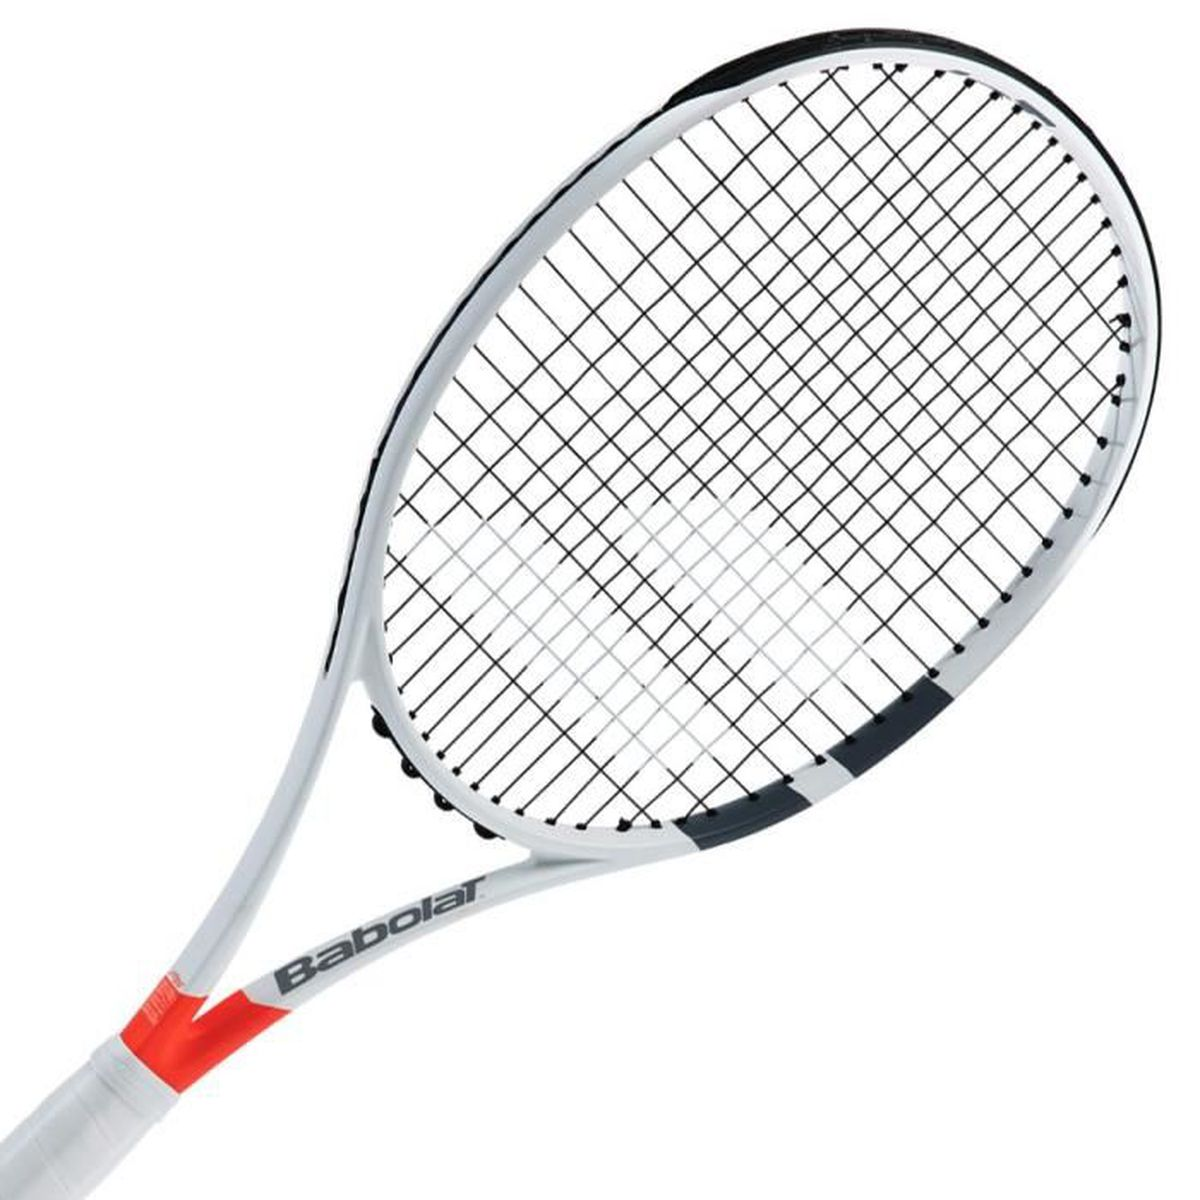 babolat pure strike 100 2017 review